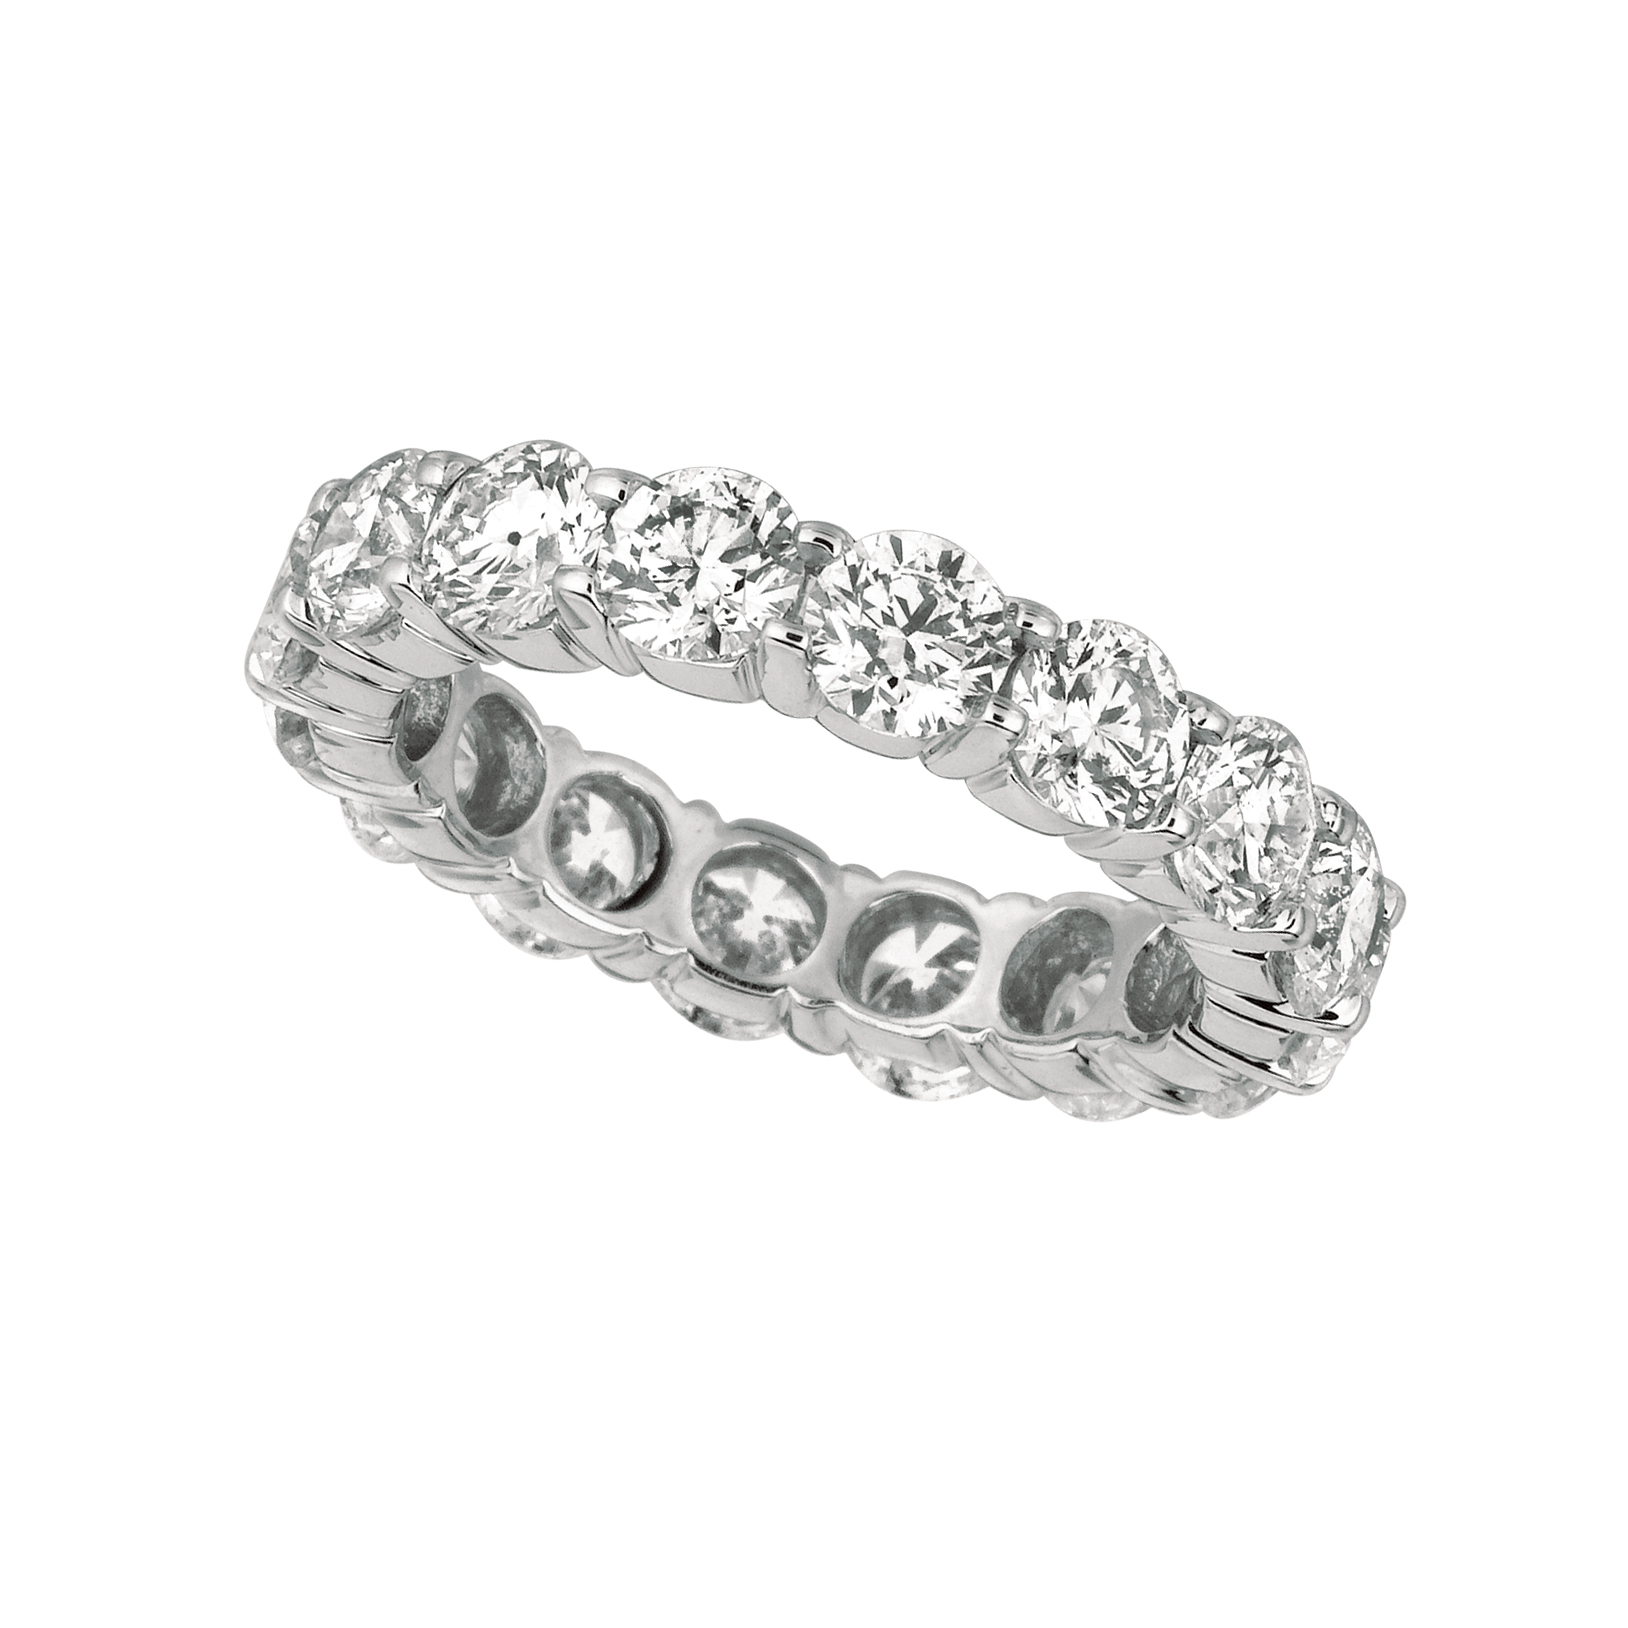 eternity bands img ban baguette jennie diamond round band designs products kwon